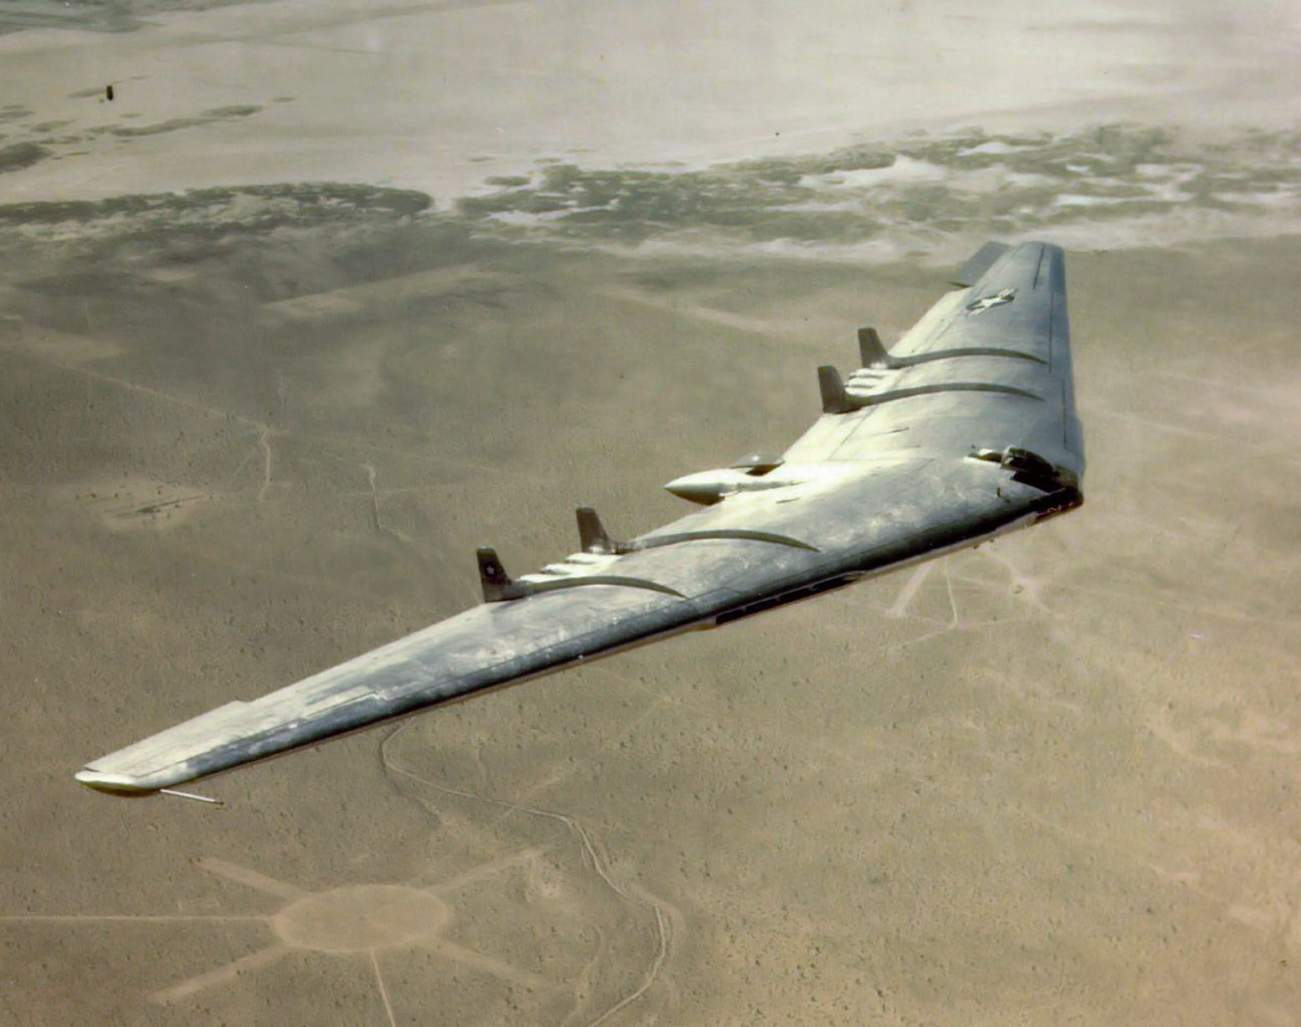 How the Air Force's Stealth Bomber Was Born (Study This Old Plane)